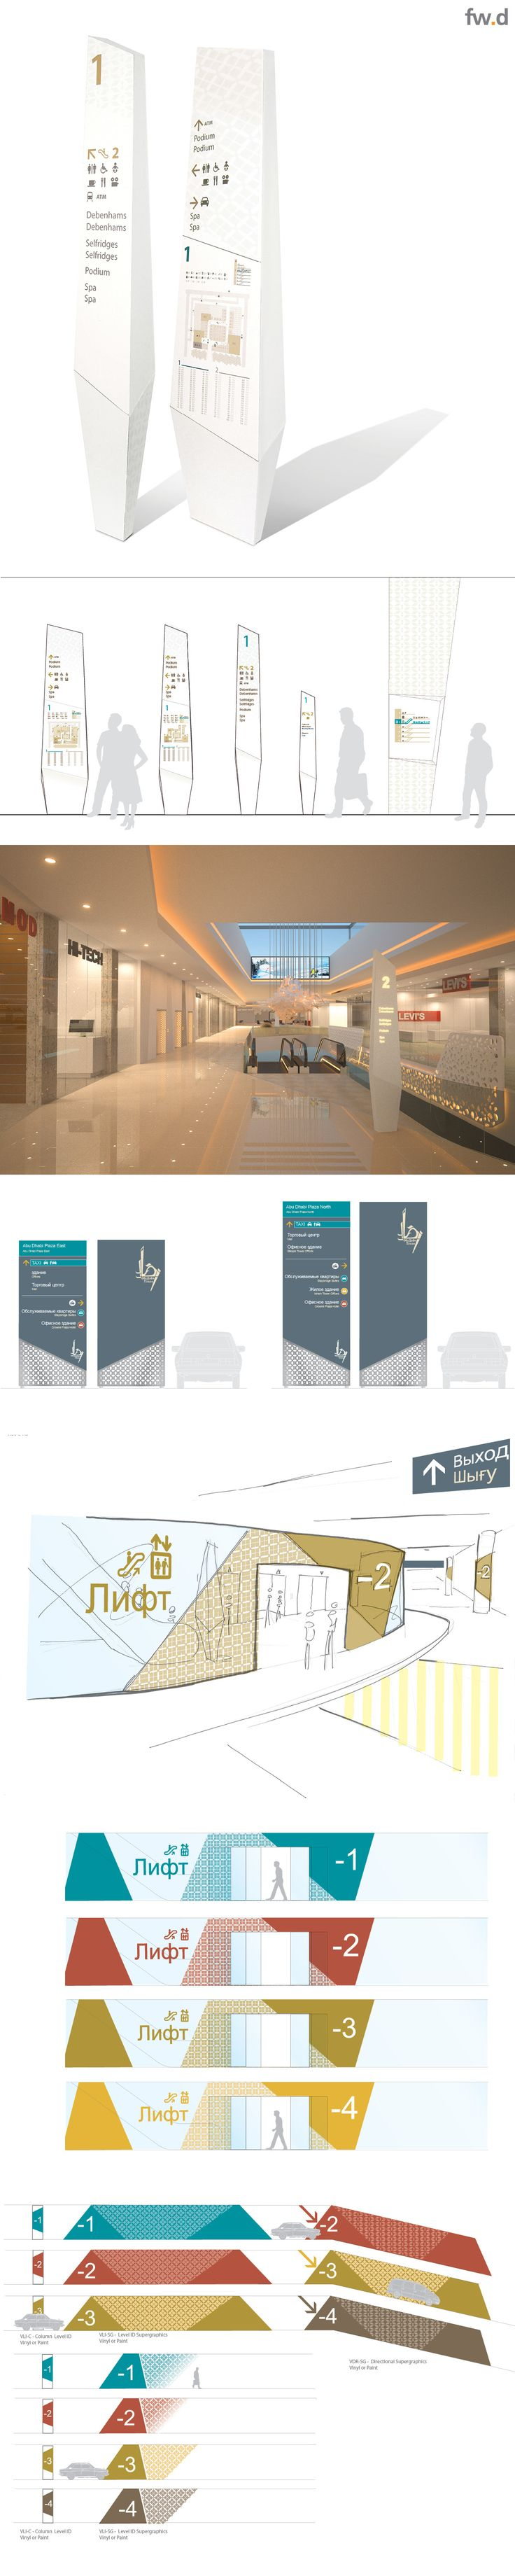 Destination wayfinding & signage design for Abu Dhabi Plaza by fwdesign. www.fwdesign.com